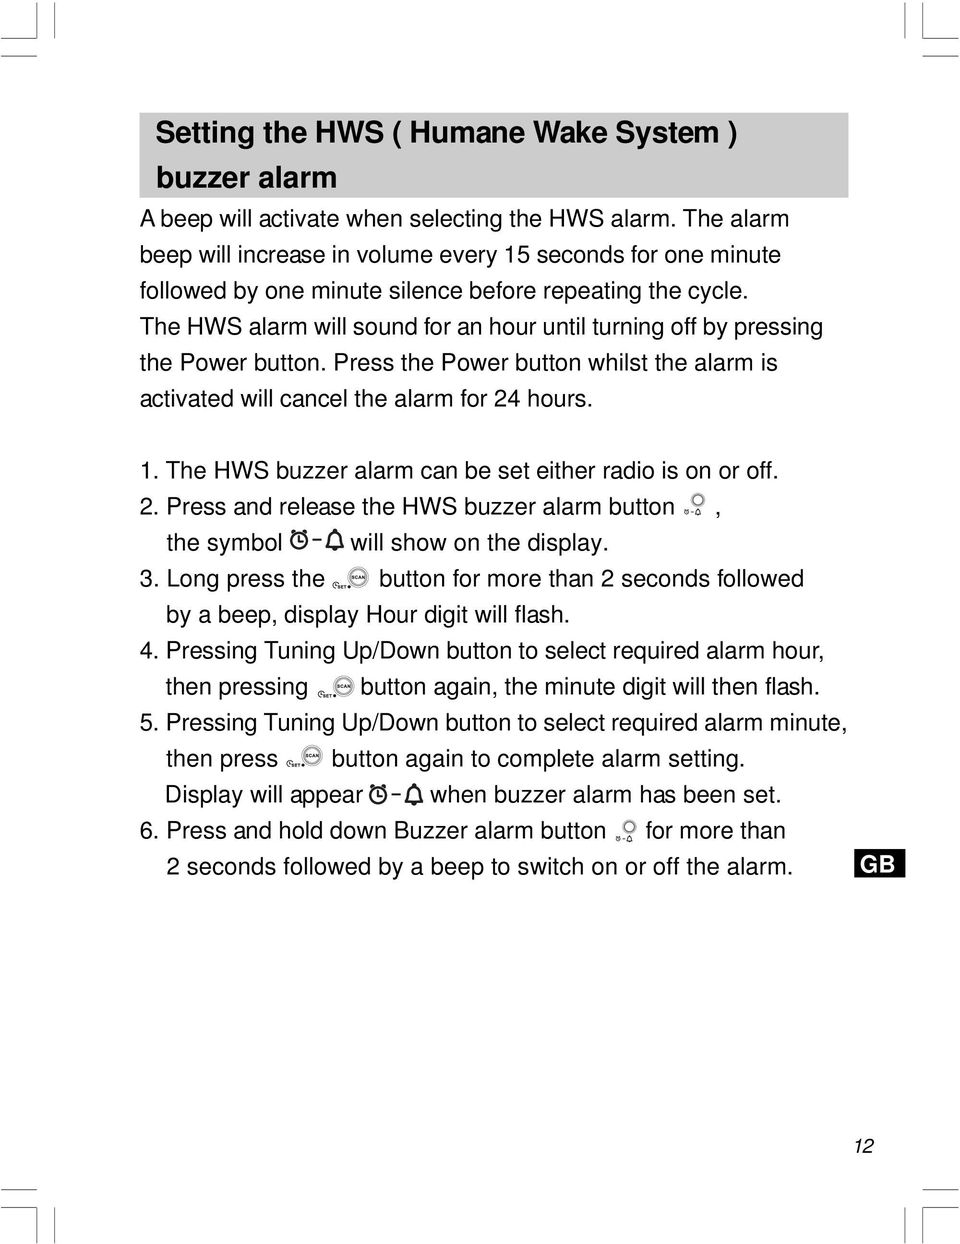 The HWS alarm will sound for an hour until turning off by pressing the Power button. Press the Power button whilst the alarm is activated will cancel the alarm for 24 hours. 1.